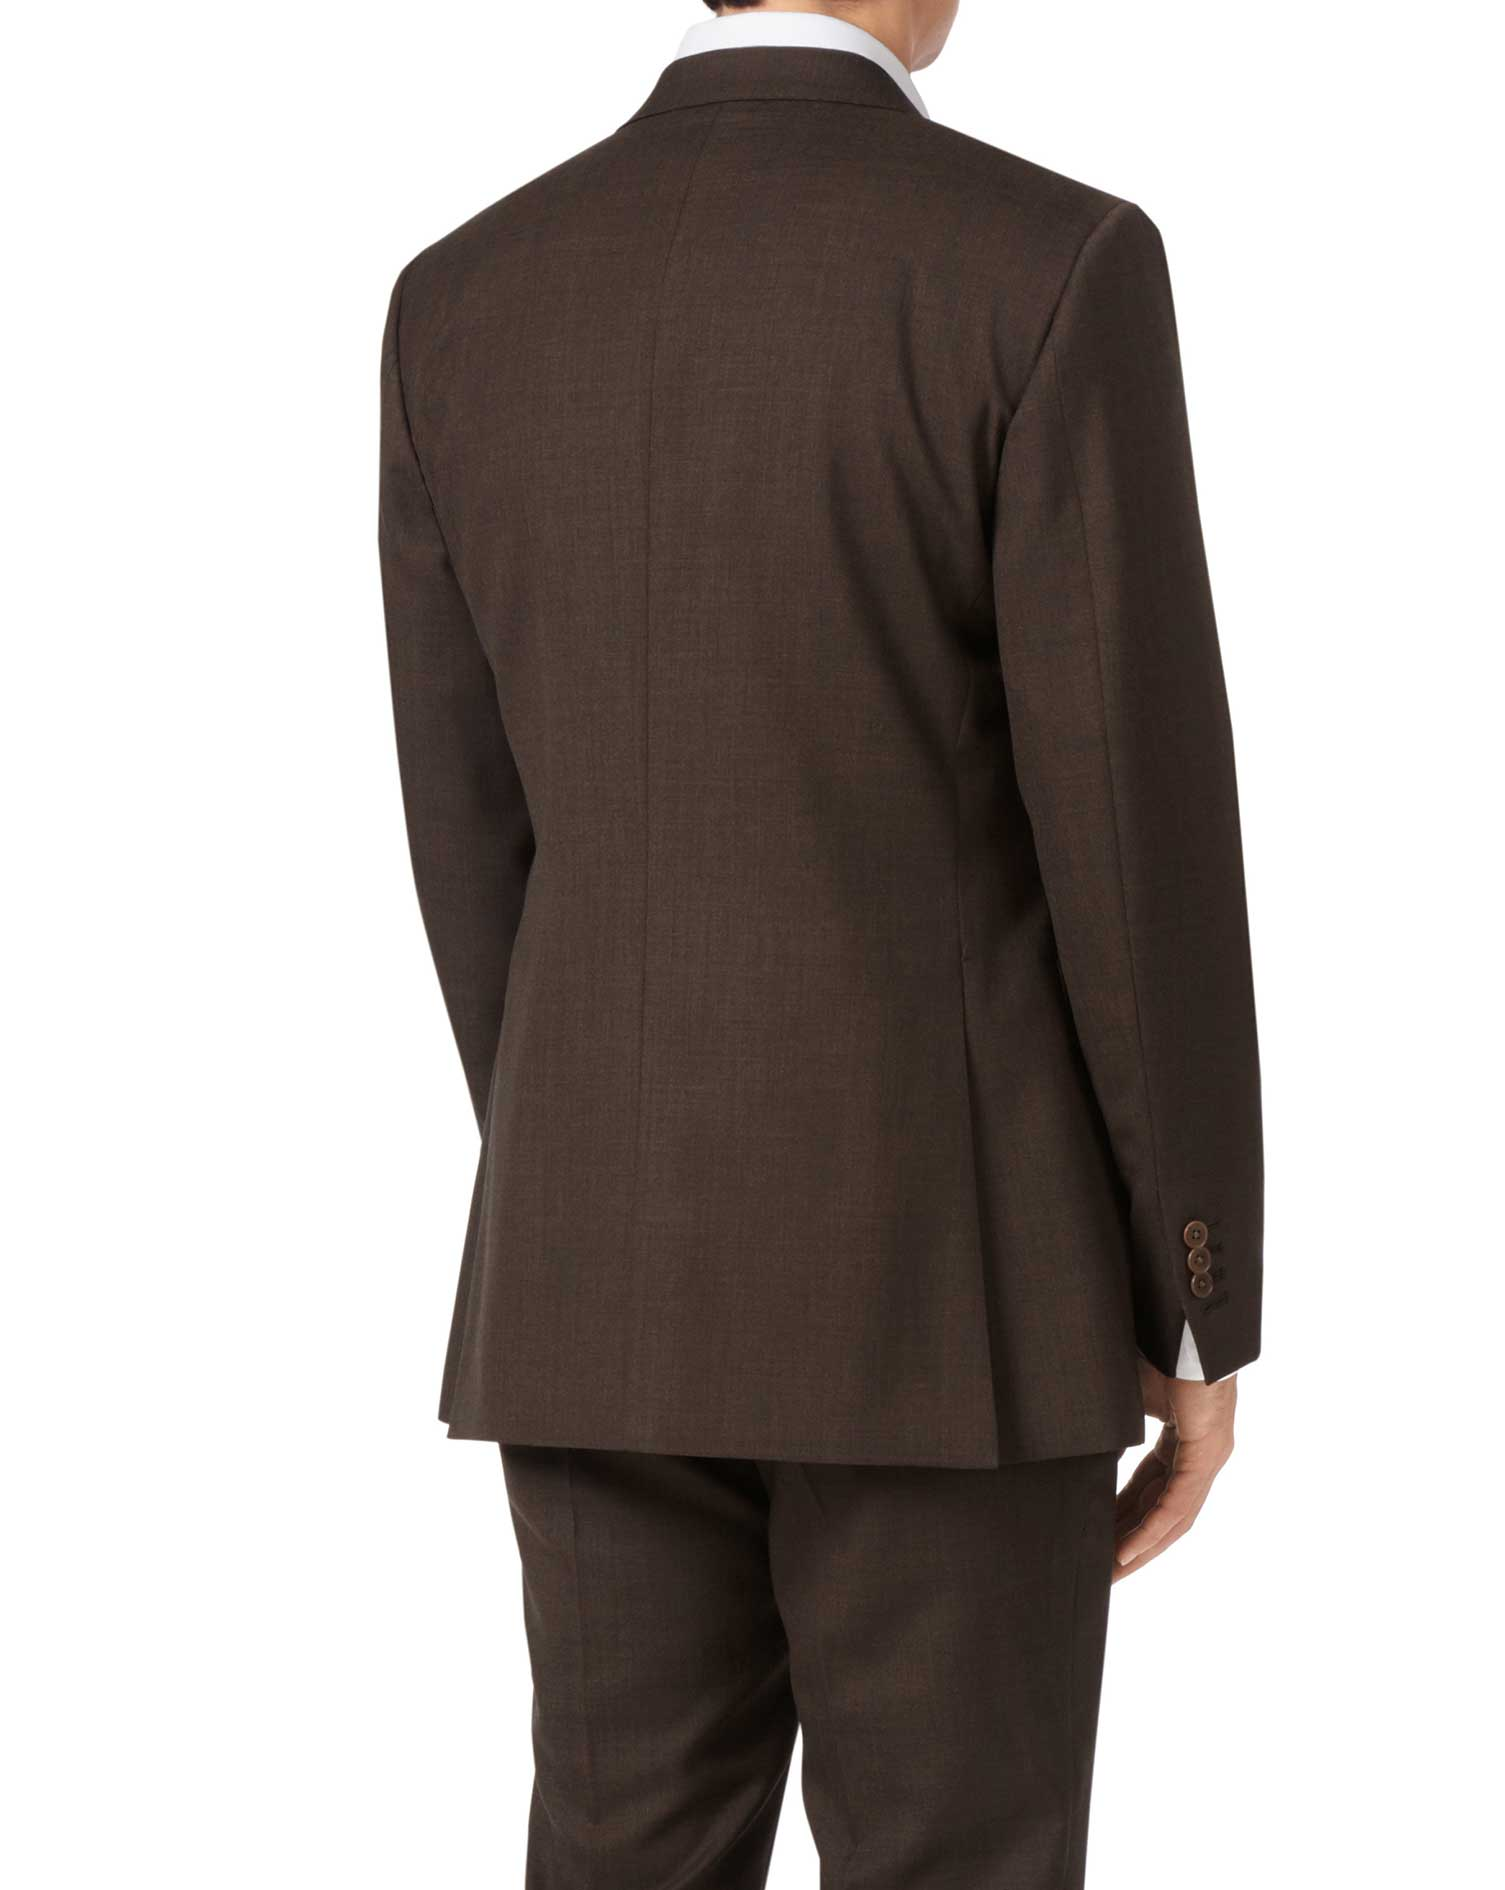 Chocolate slim fit sharkskin travel suit jacket